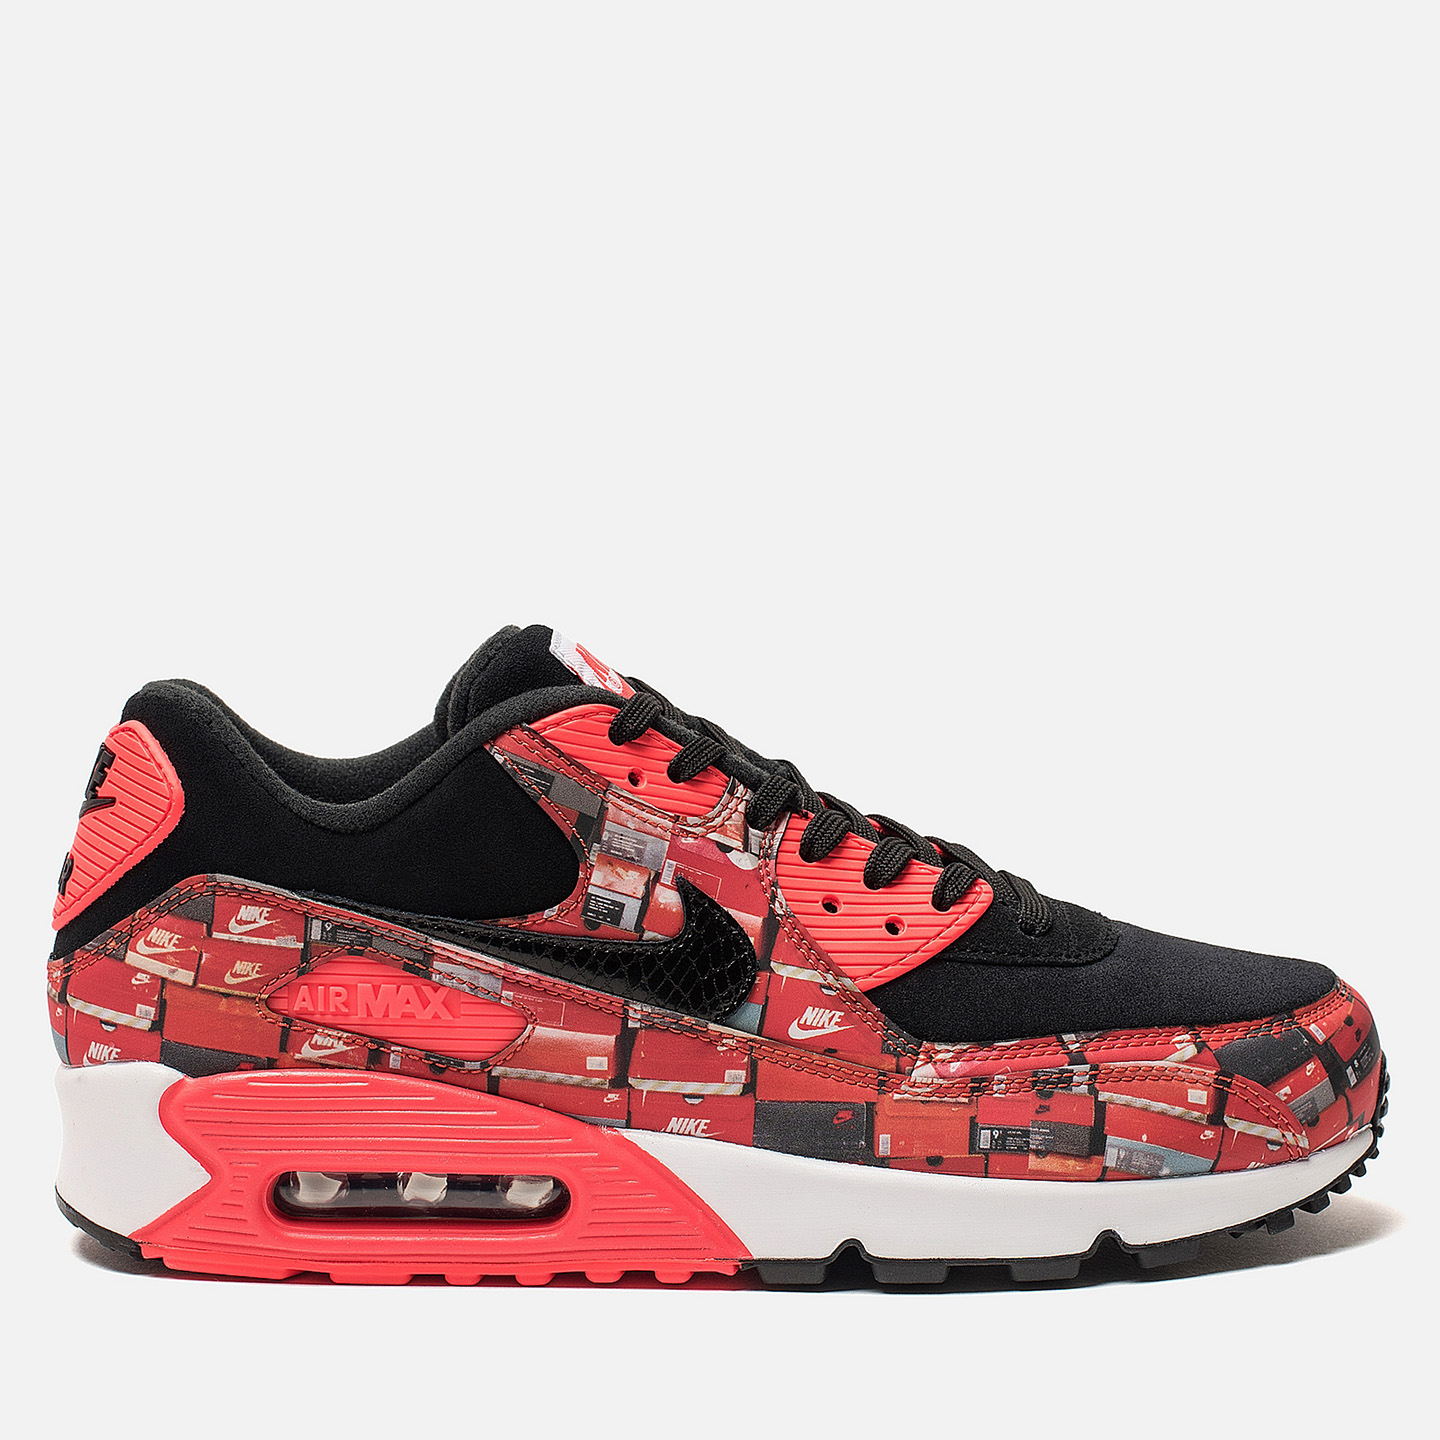 83279587 Кроссовки x atmos Air Max 90 We Love Nike Pack Black/Bright Crimson/White  ...